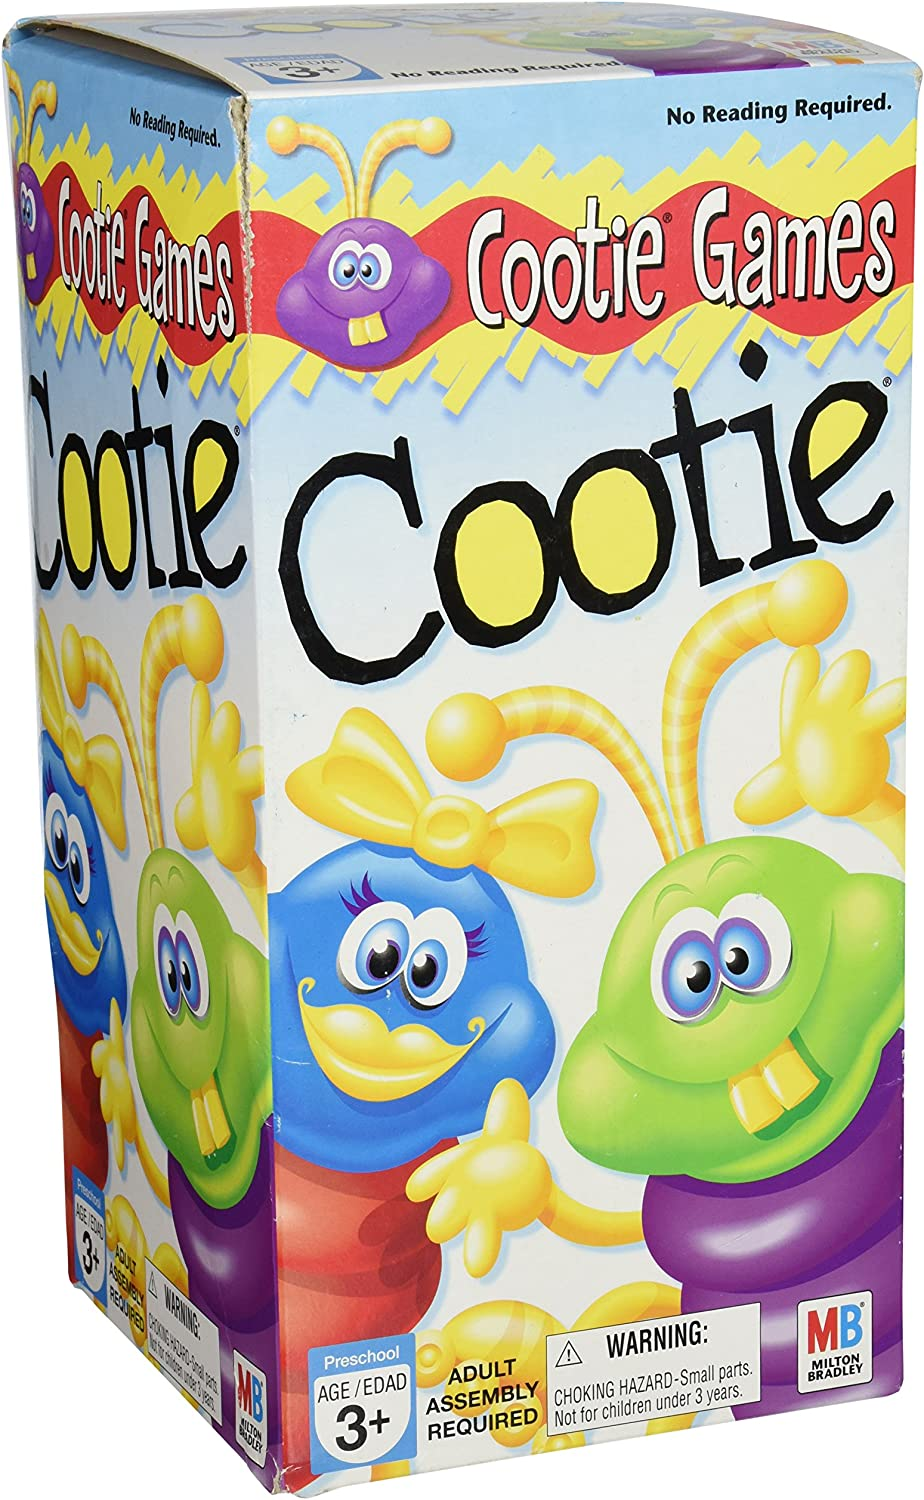 Hasbro Max 43% OFF Gaming Time sale Cootie